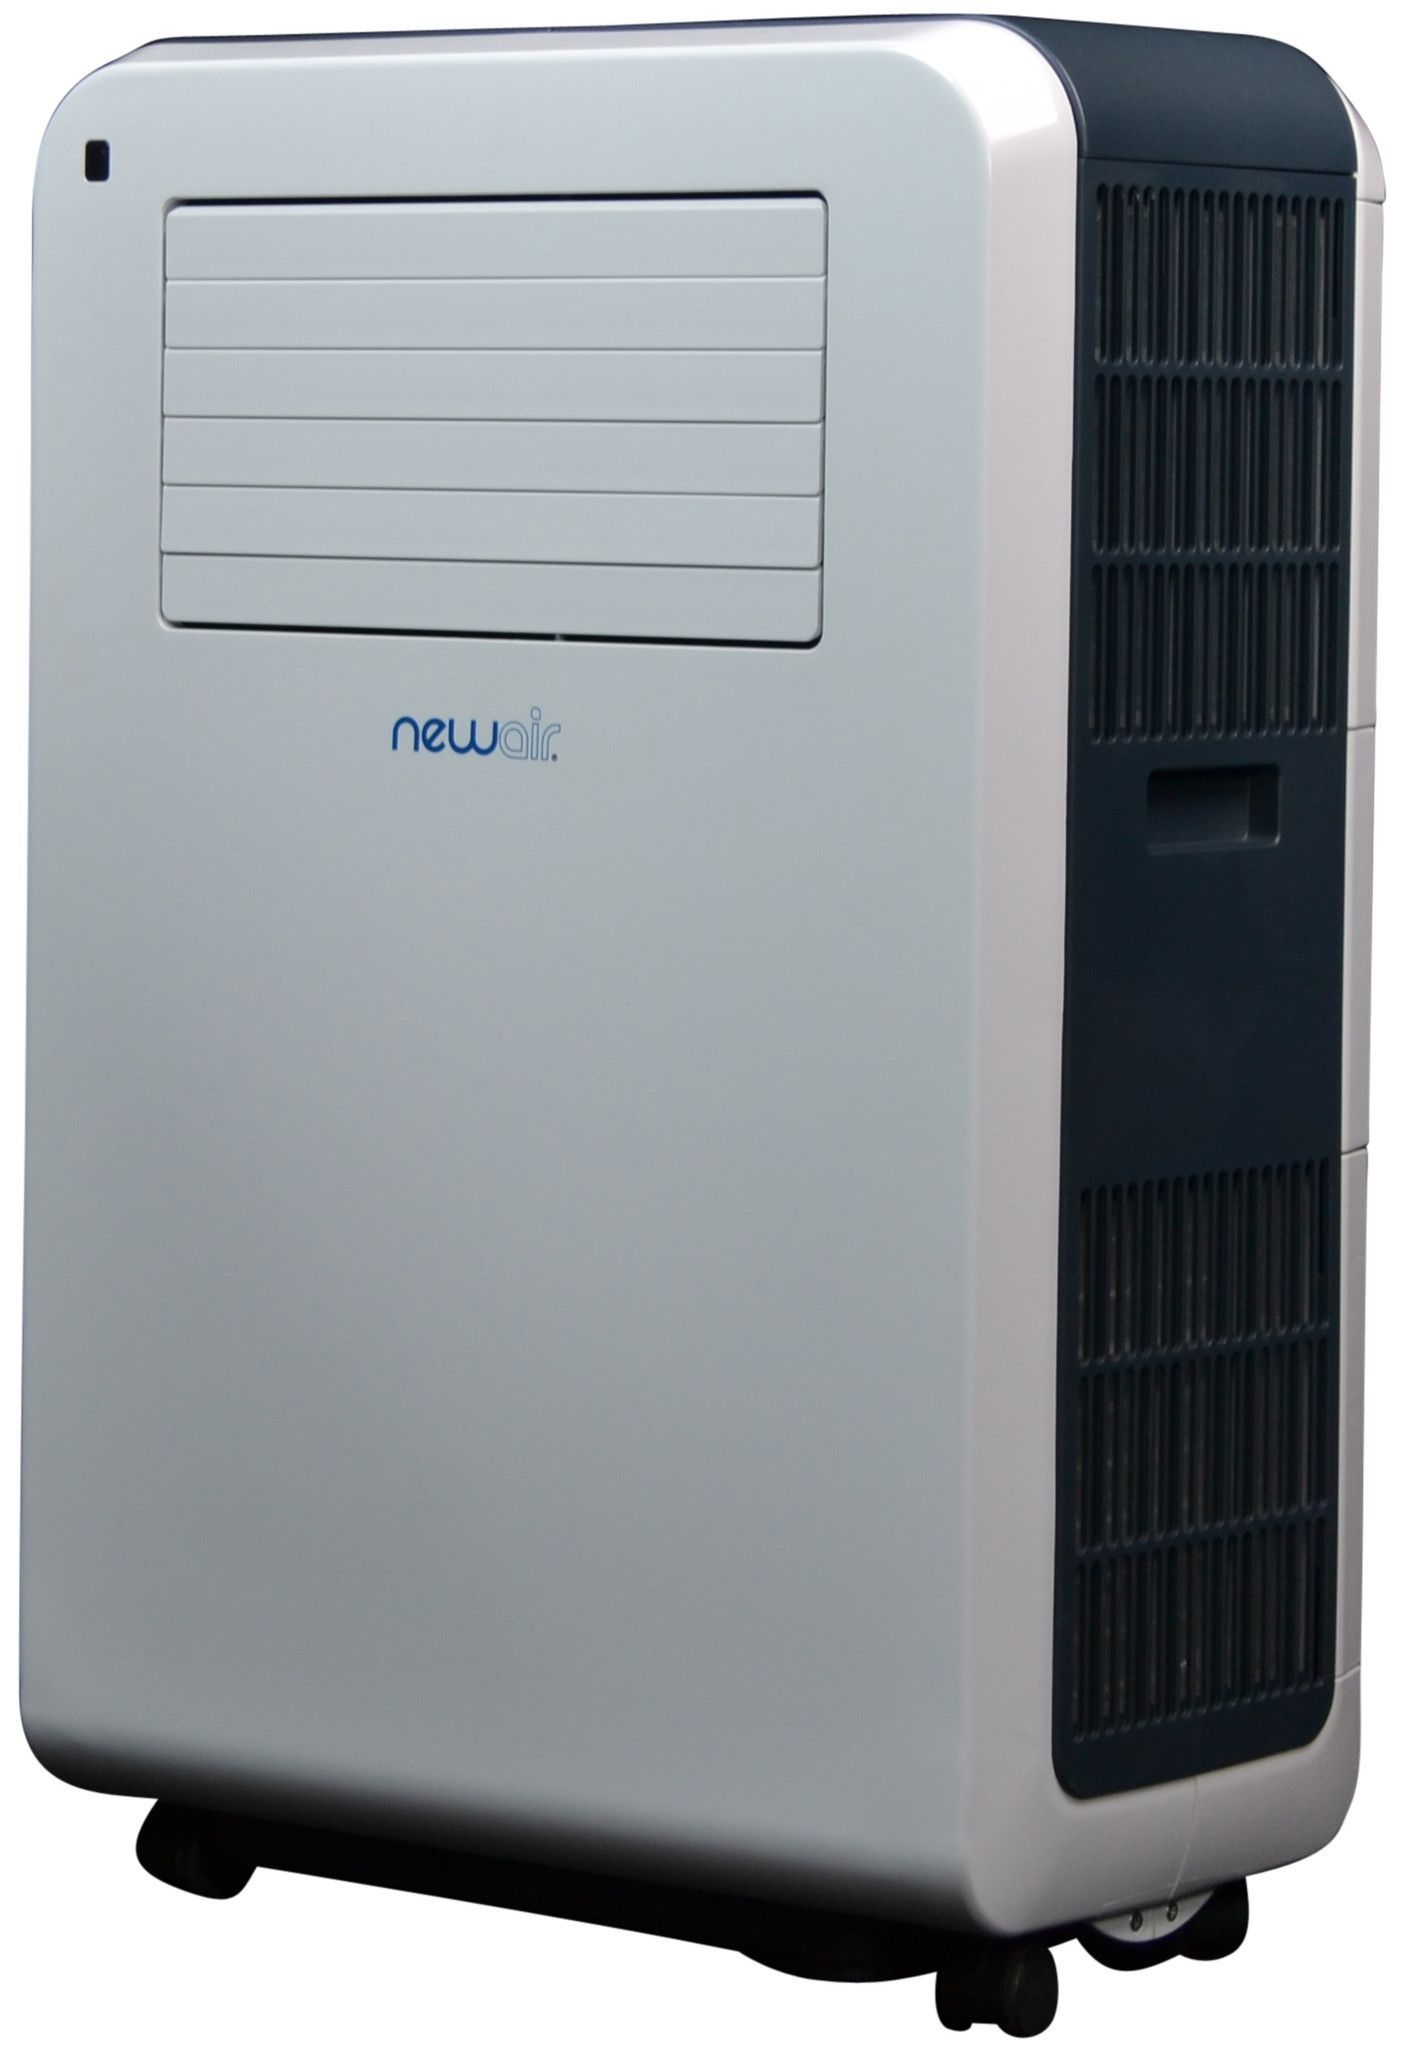 NewAir AC12200E 12,000 BTU Portable Air Conditioner